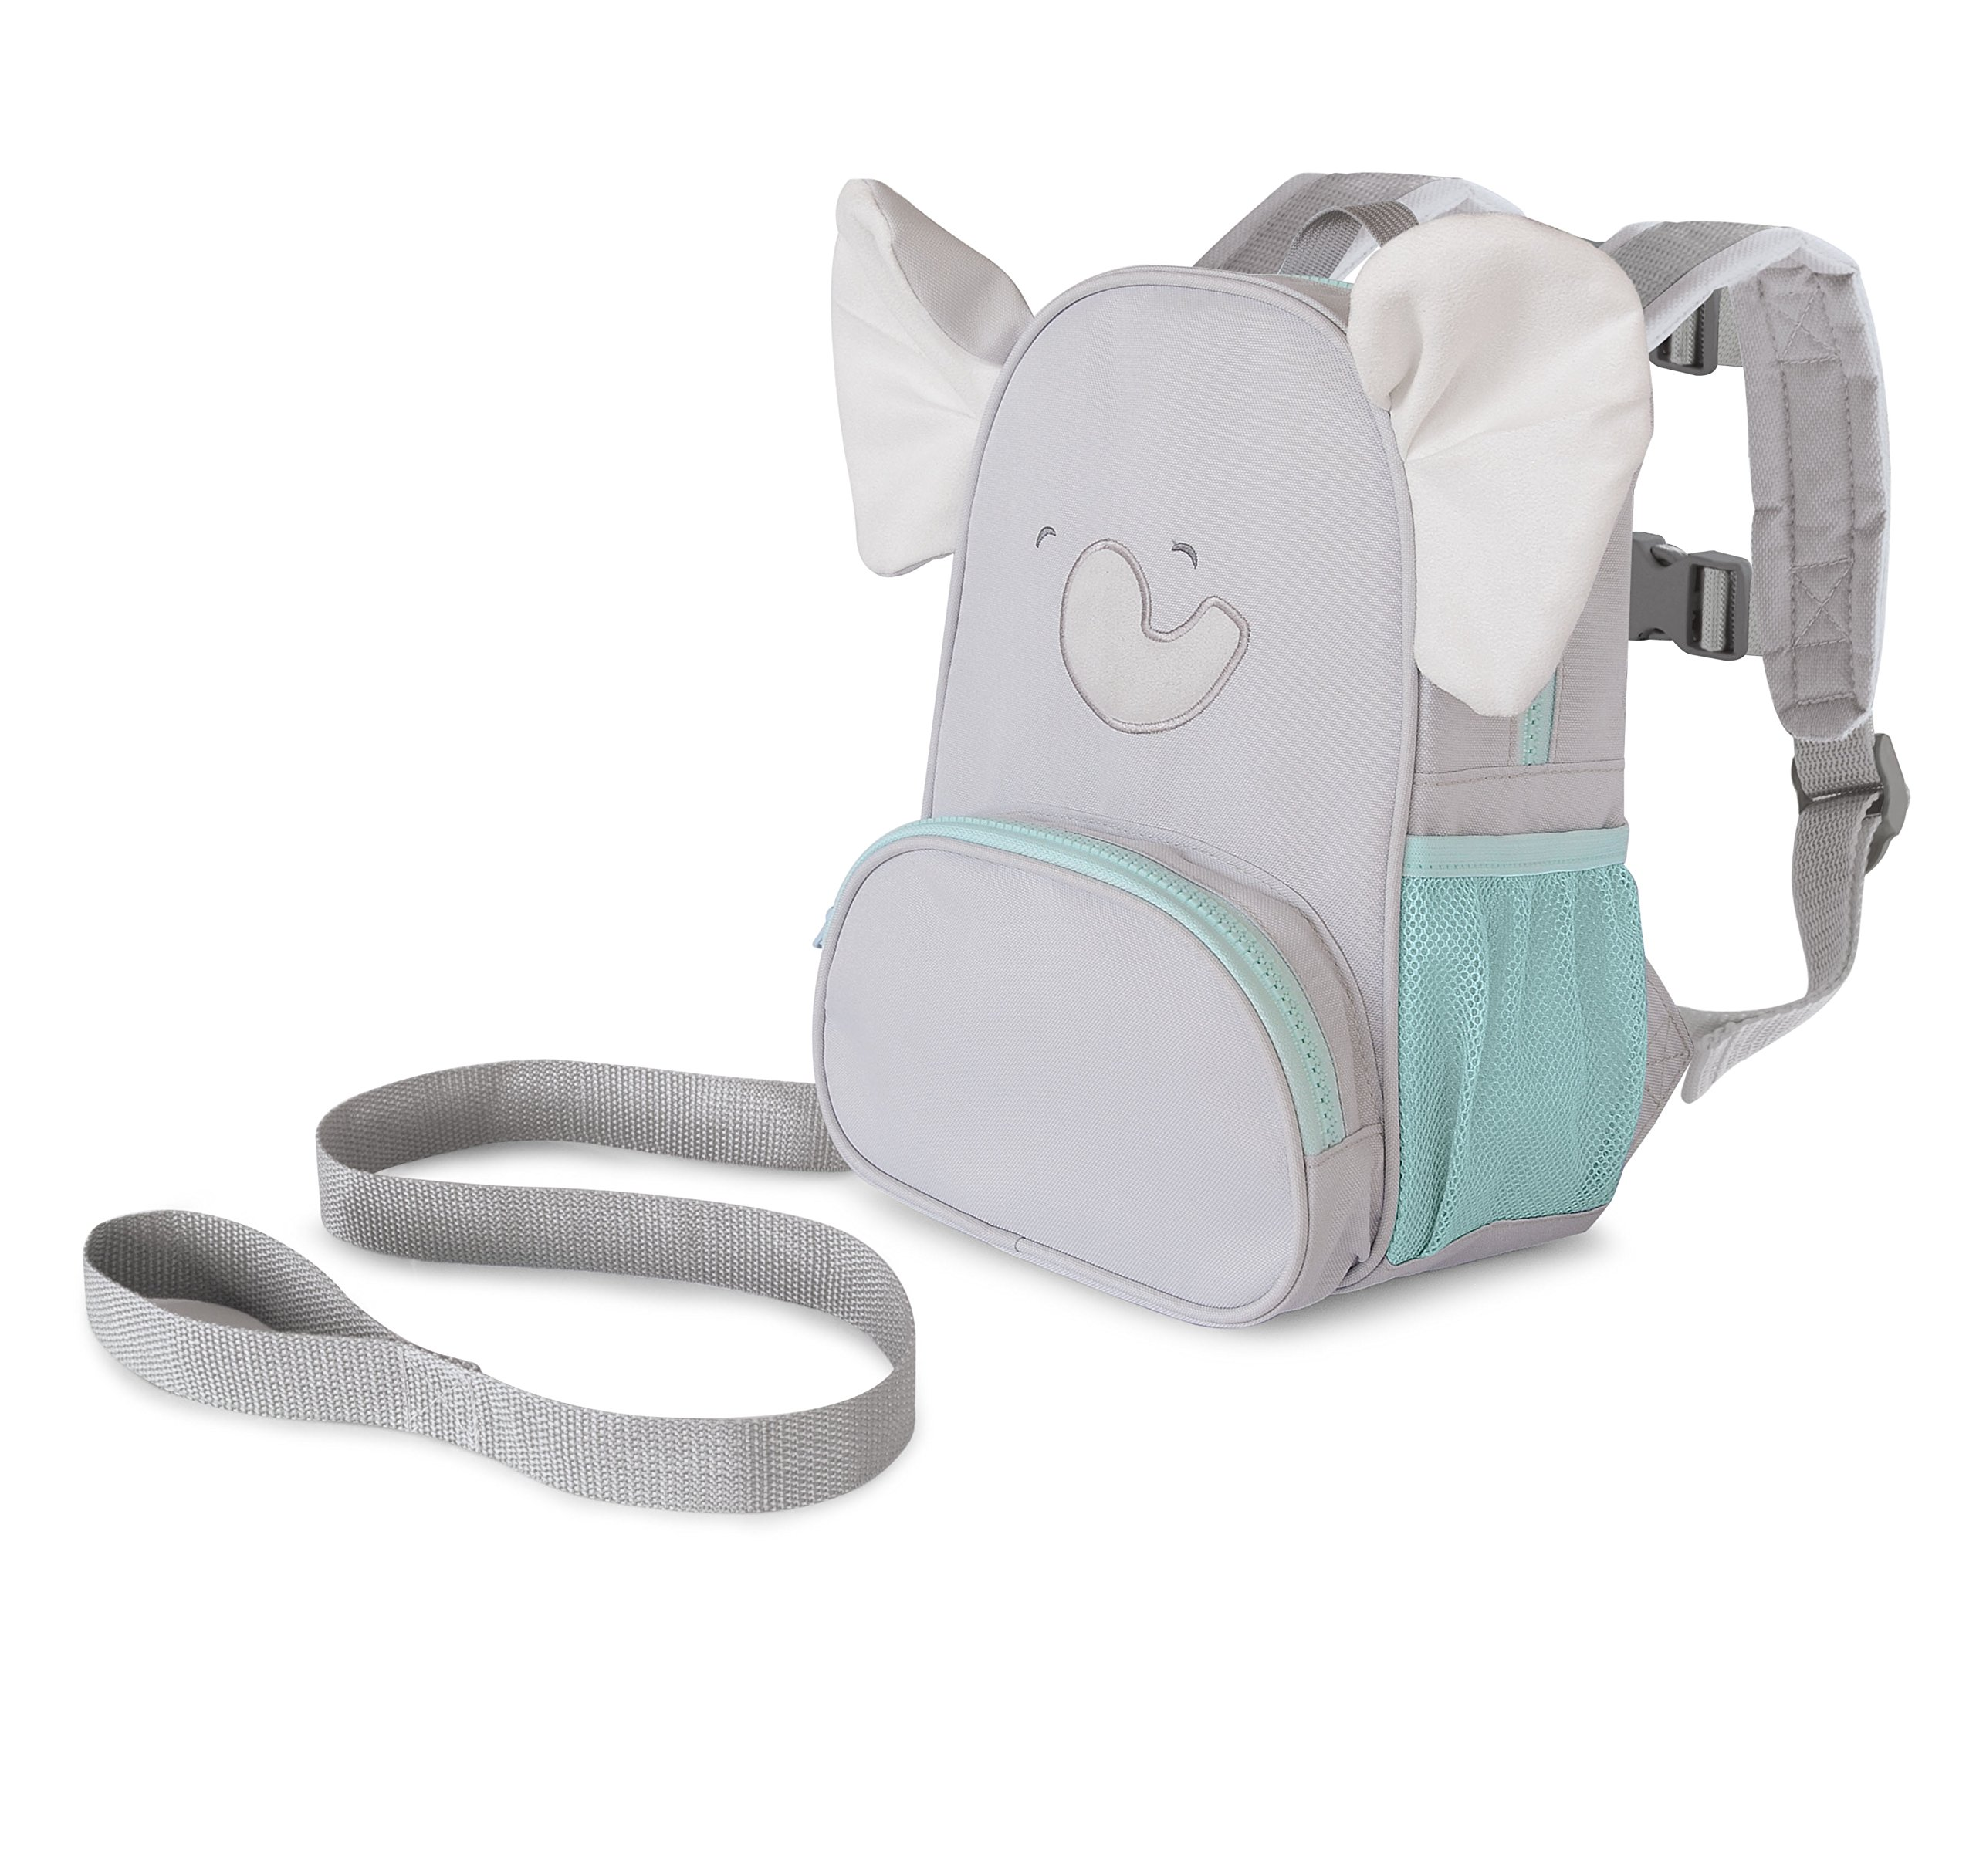 Carter's Toddler Safety Harness, Animal Elephant Backpack, Grey/Turquoise